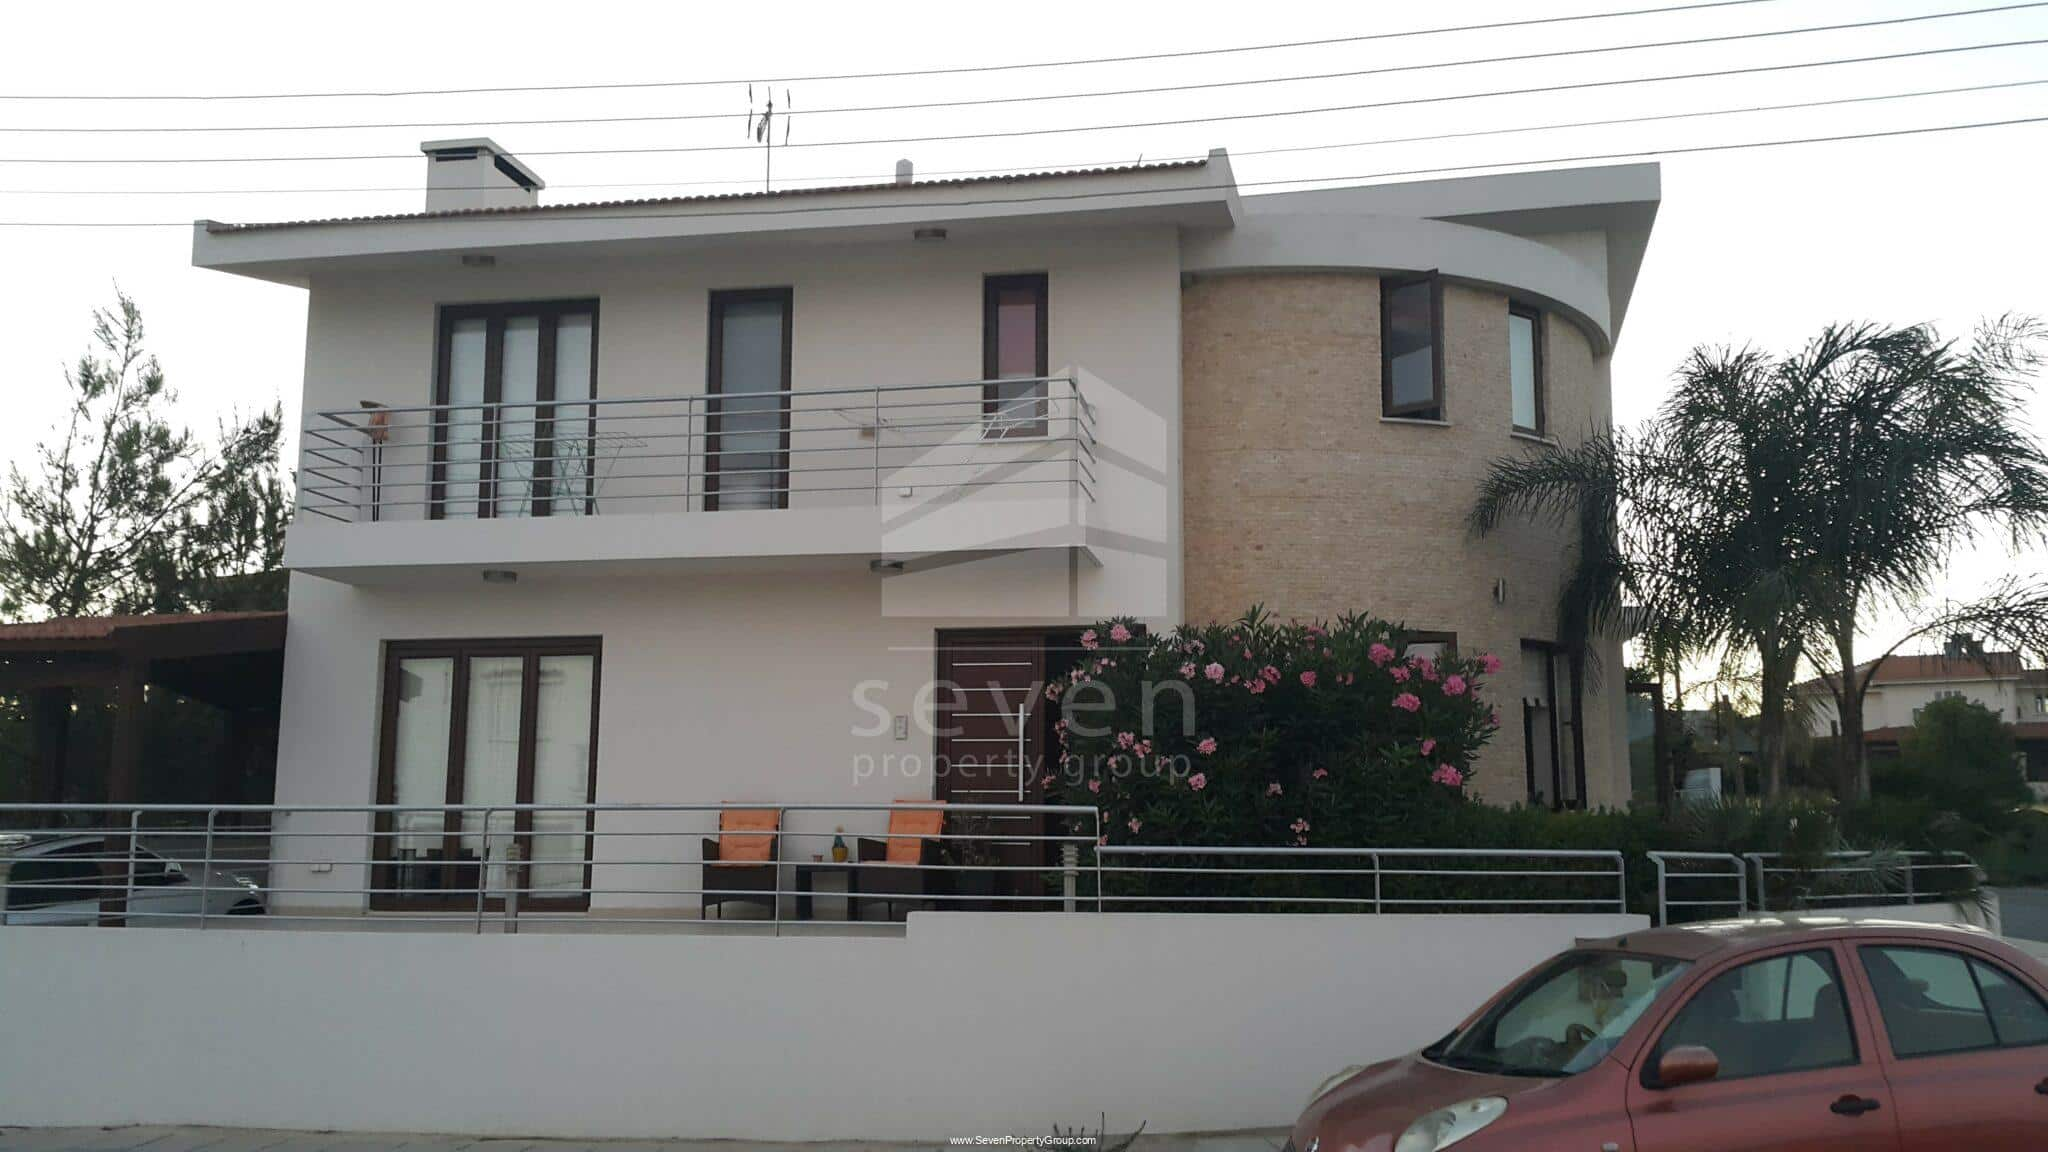 4BED HOUSE FOR SALE IN ALETHRIKO